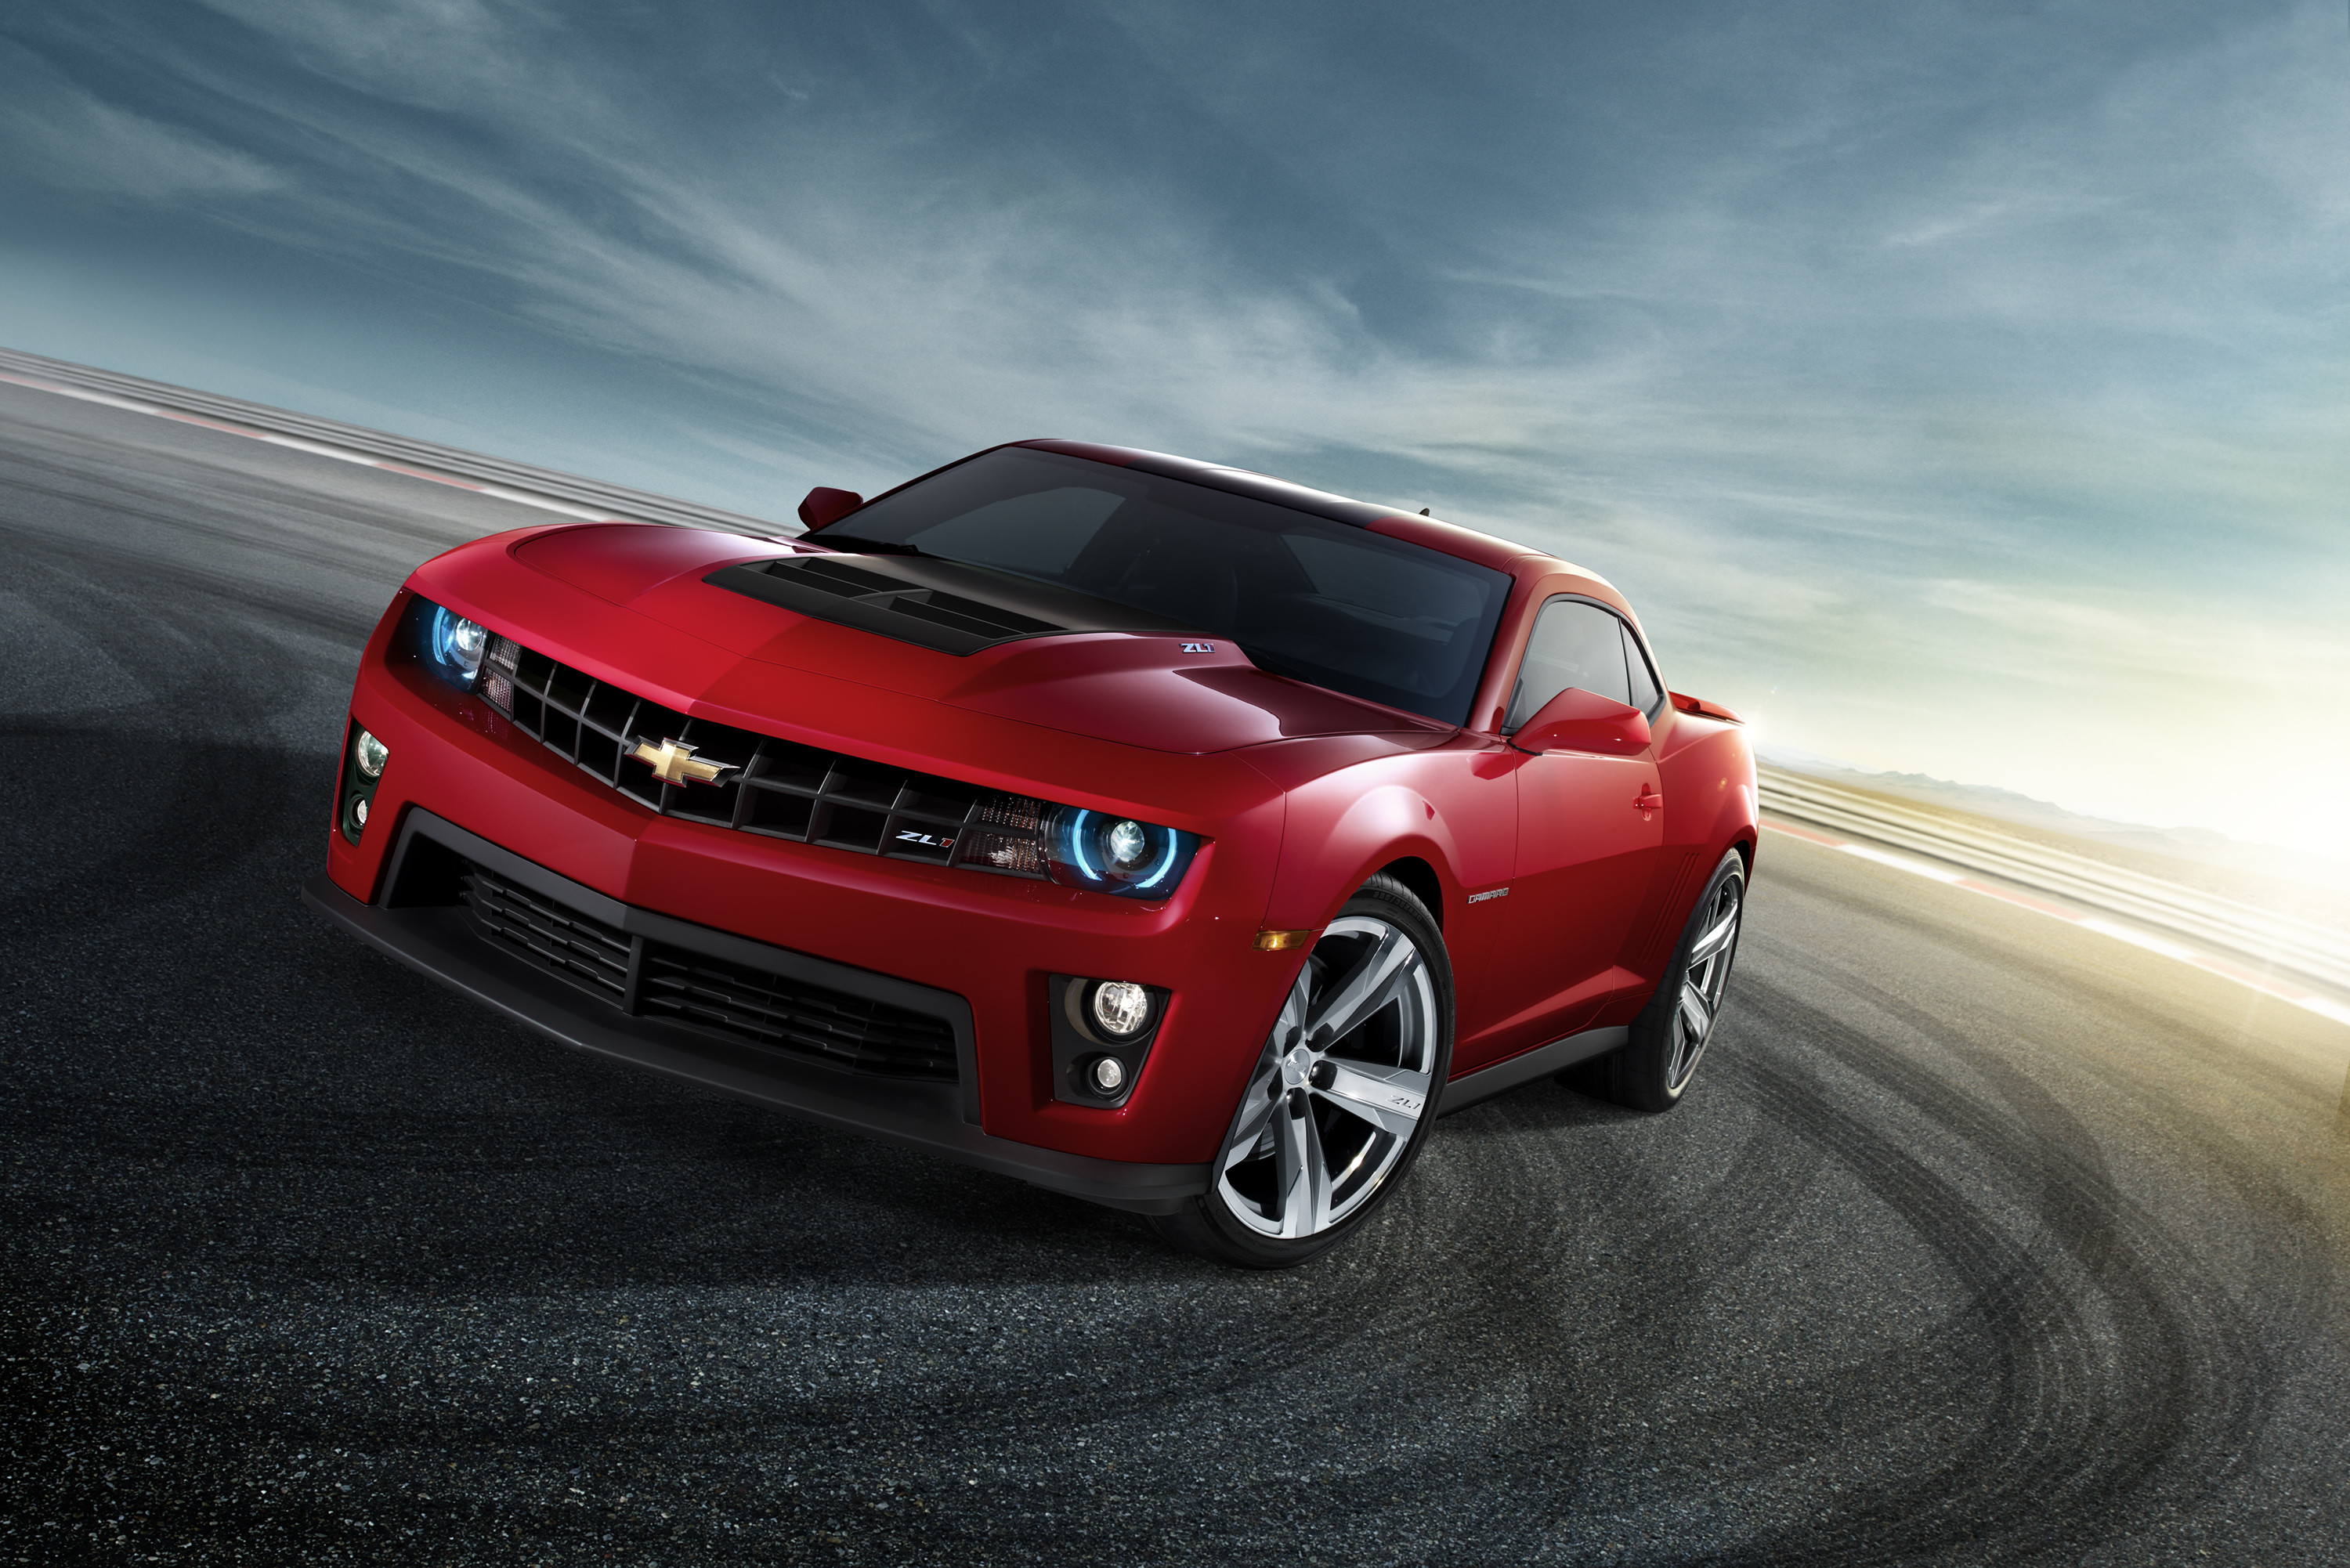 3000x2002 2018 Chevrolet Camaro ZL1 1LE - Rear Three-Quarter | HD Wallpaper #2 ...